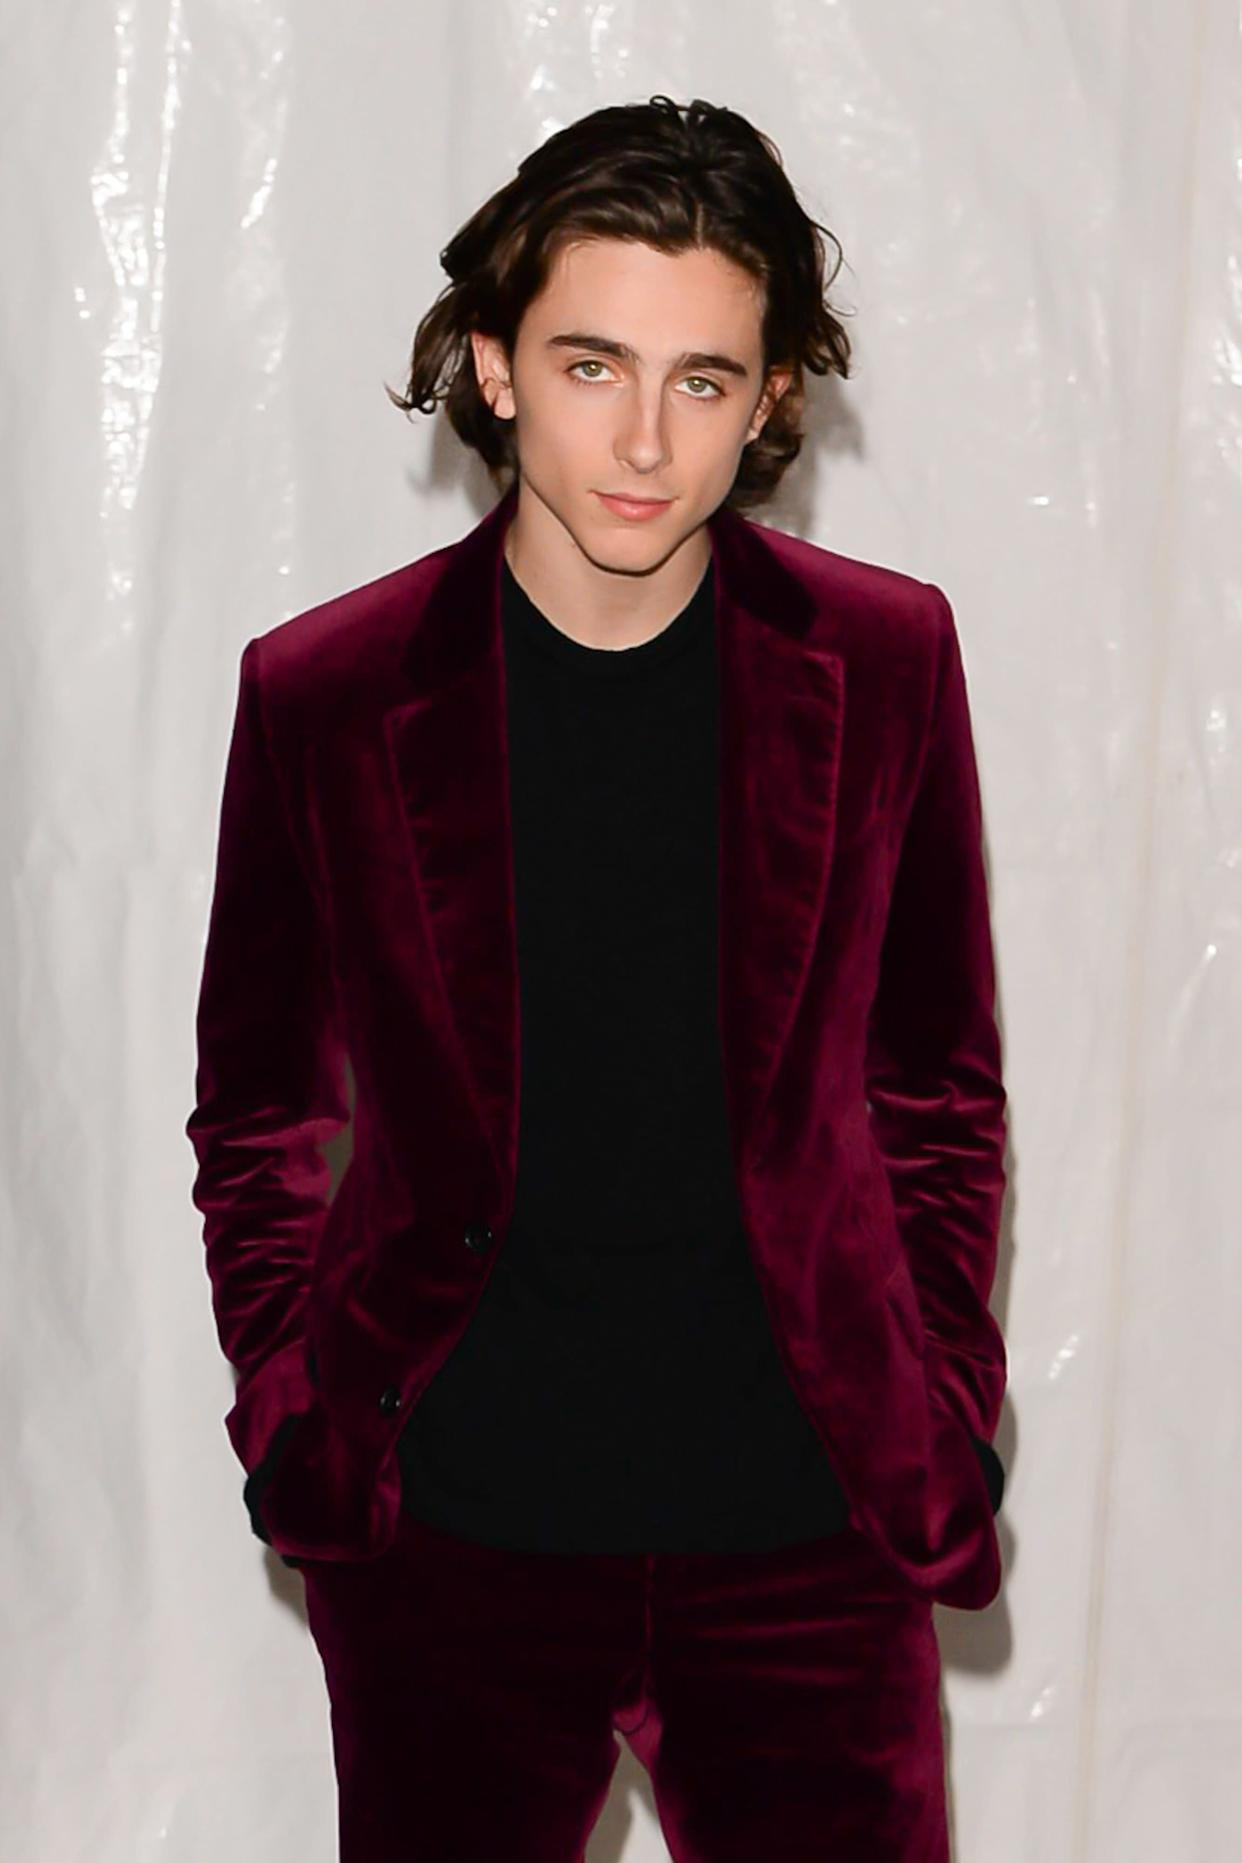 NEW YORK, NY - NOVEMBER 27: Actor Timothee Chalamet is seen Downtown on November 27, 2017 in New York City. (Photo by Raymond Hall/GC Images)